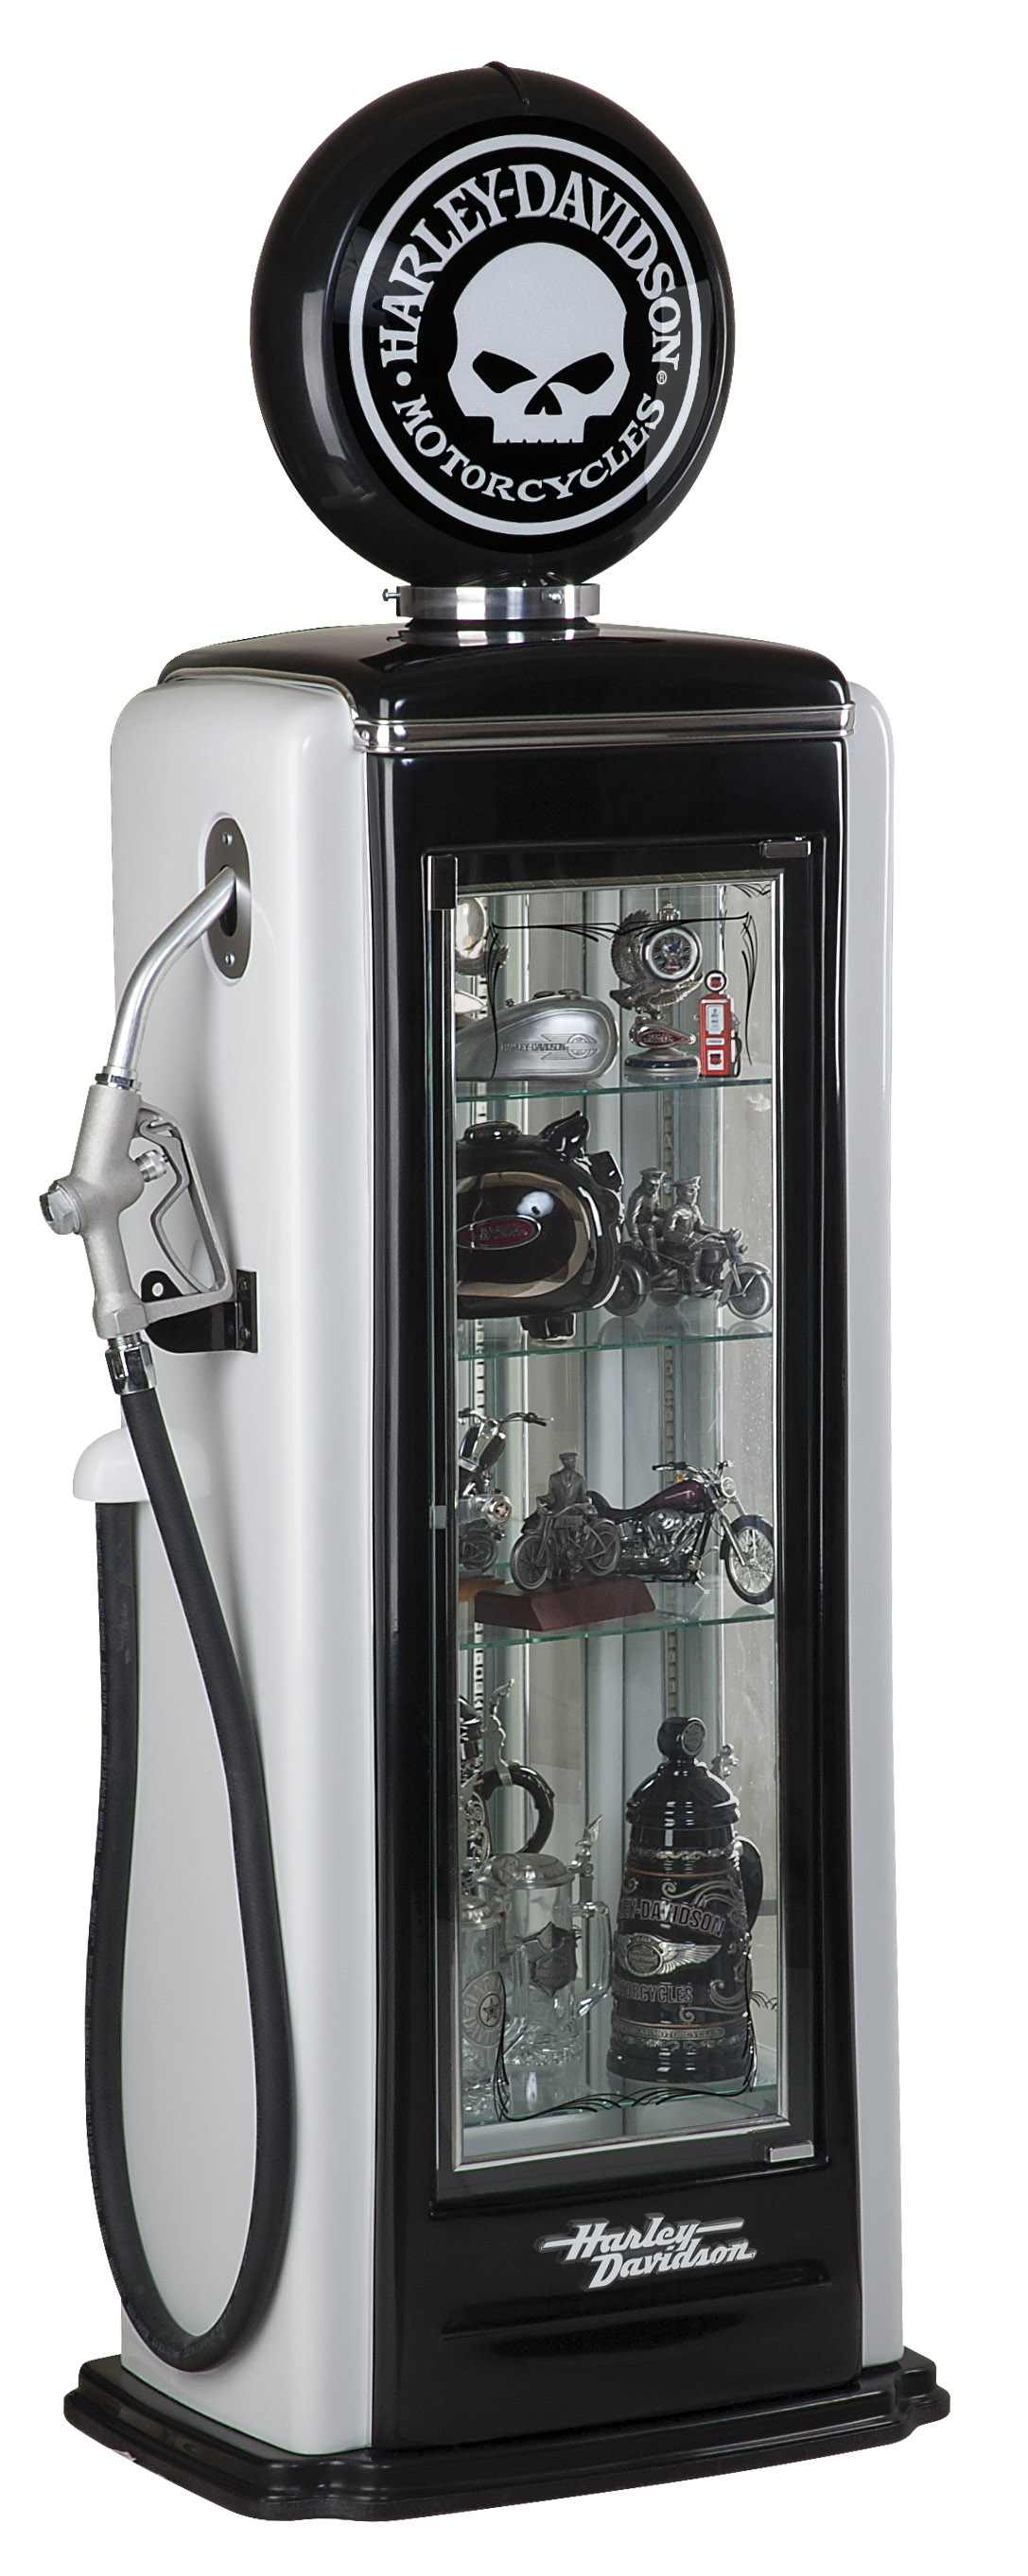 Harley-Davidson Skull Gas Pump Display Case HDL-19001